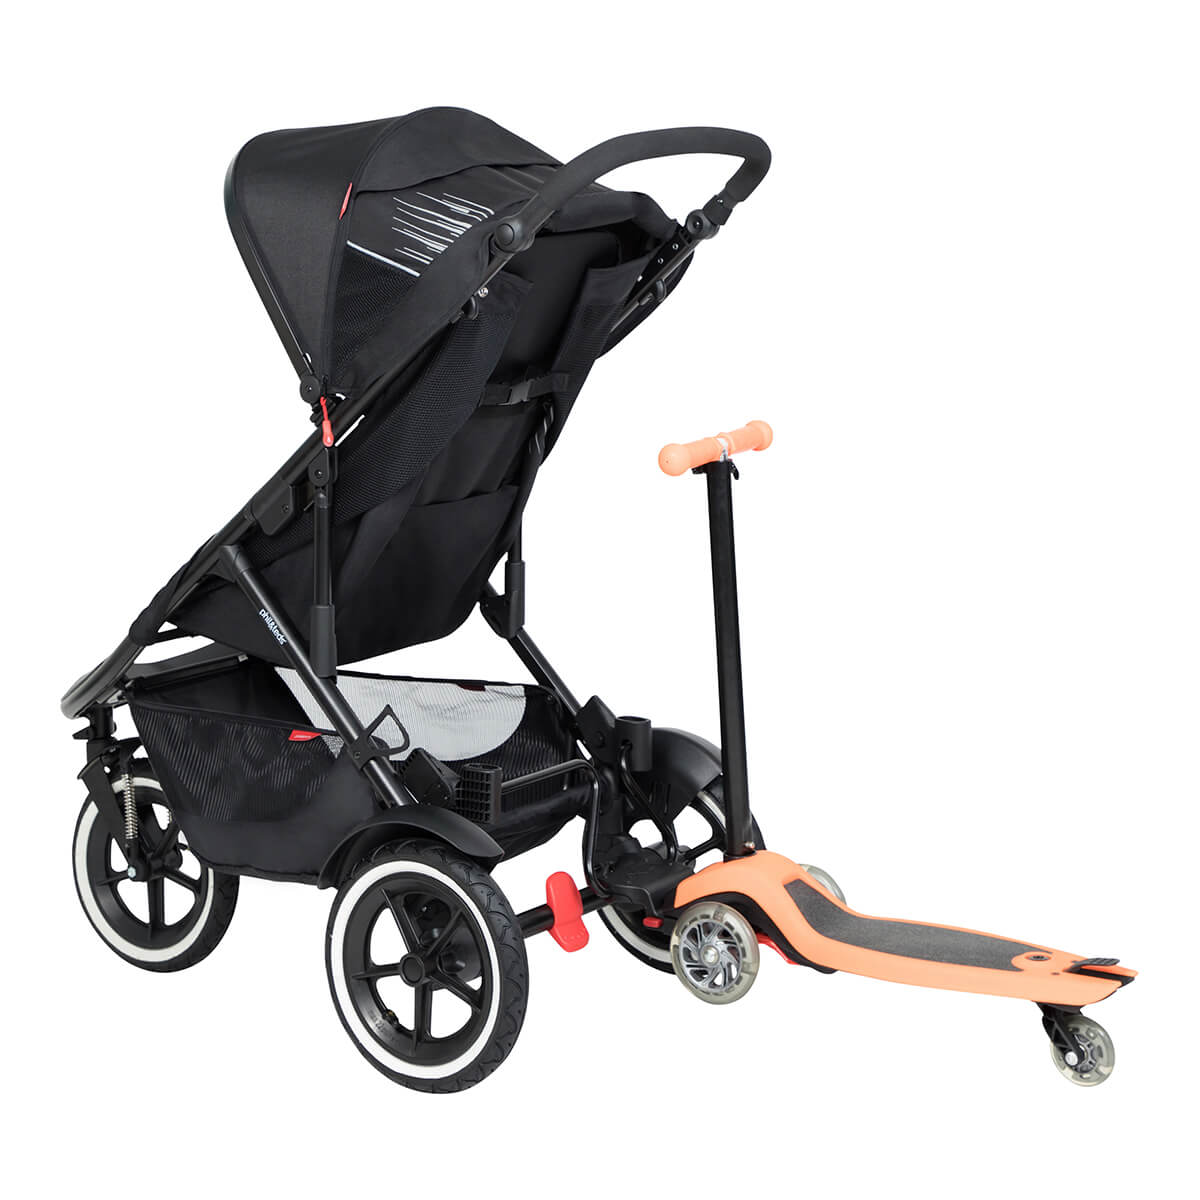 https://cdn.accentuate.io/4509527113816/19272668348504/philteds-sport-buggy-with-freerider-stroller-board-in-rear-v1626484326880.jpg?1200x1200